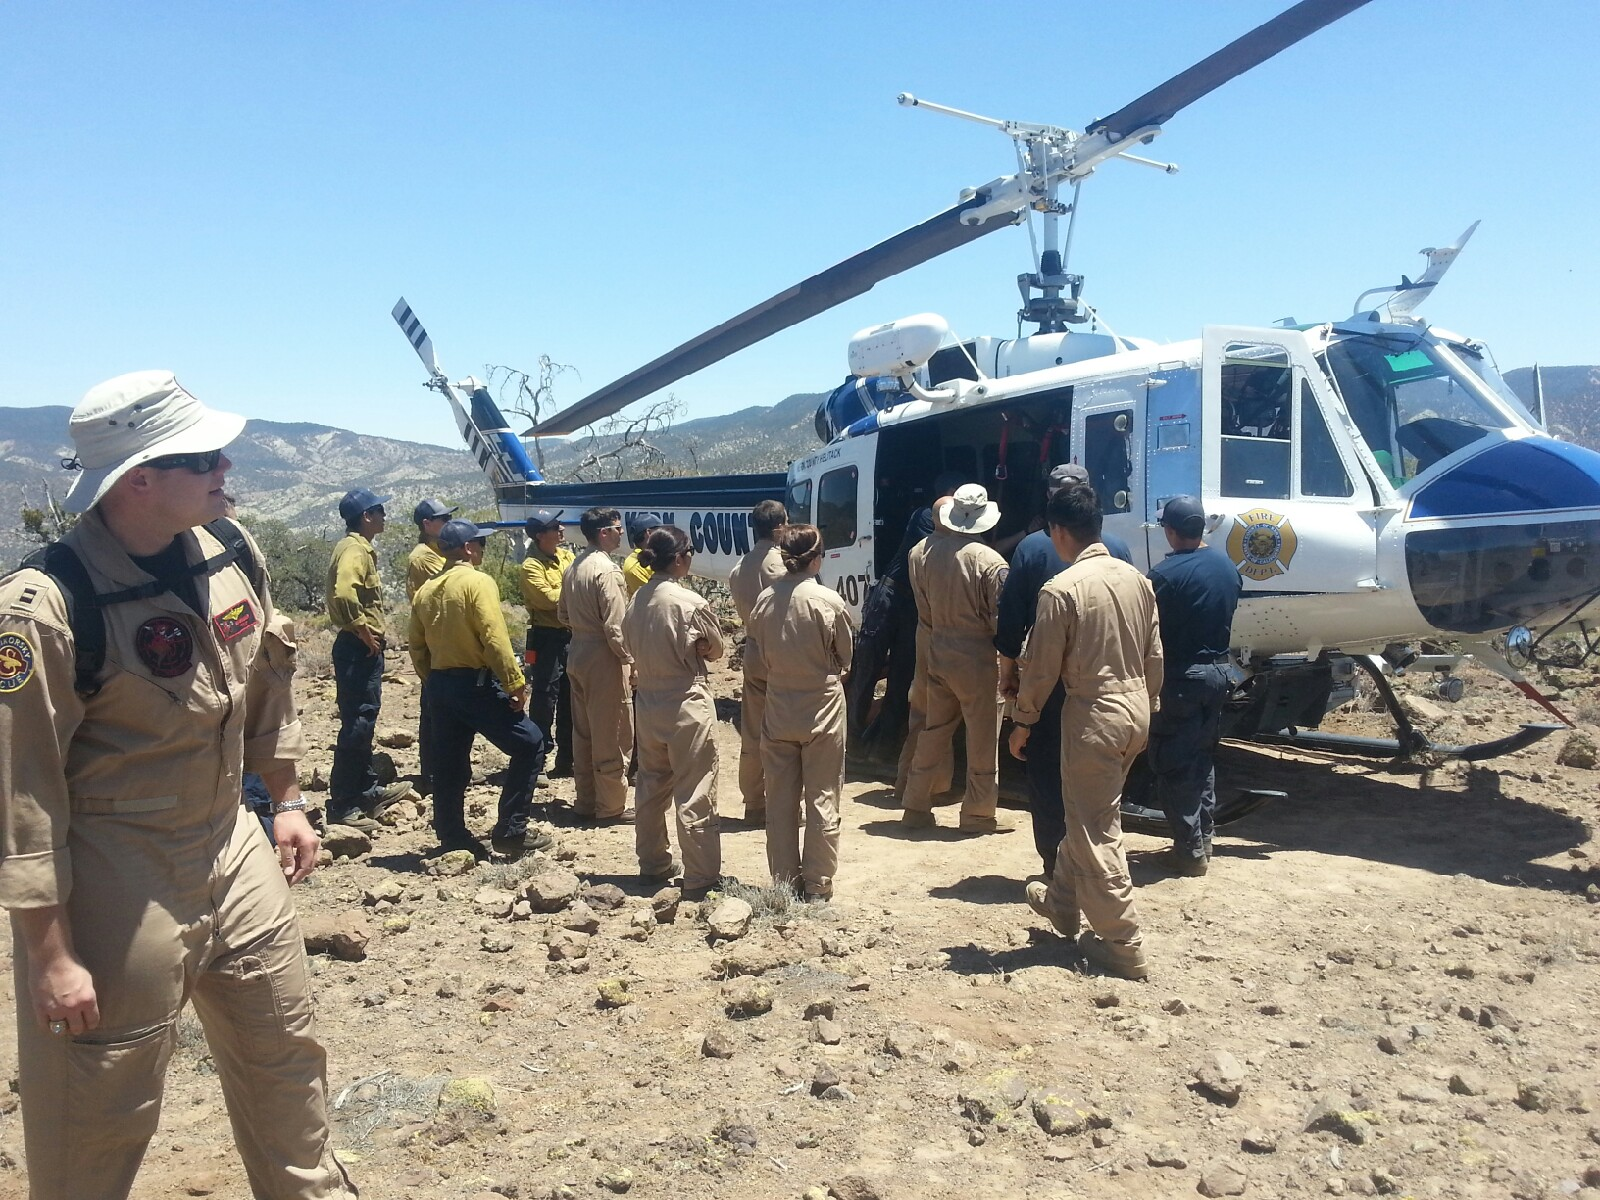 U.S. Navy VX-31 Search & Rescue and Kern County Fire Helicopter 407 partaking in signal training conducted by our Chief Instructor.